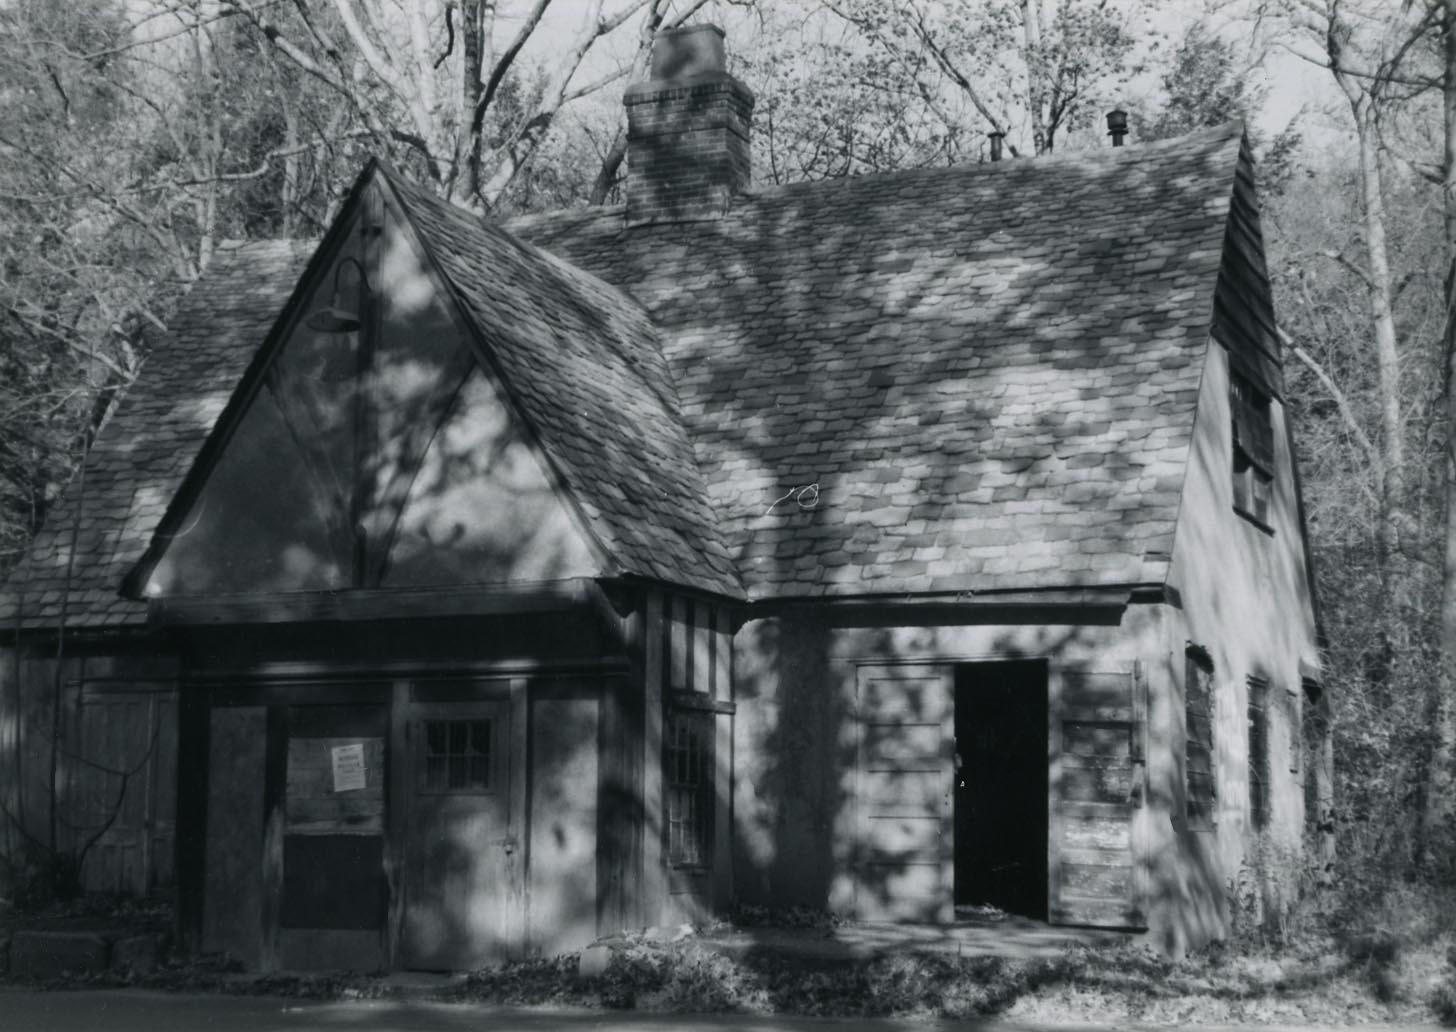 Bear Mountain Tollhouse in 1976.